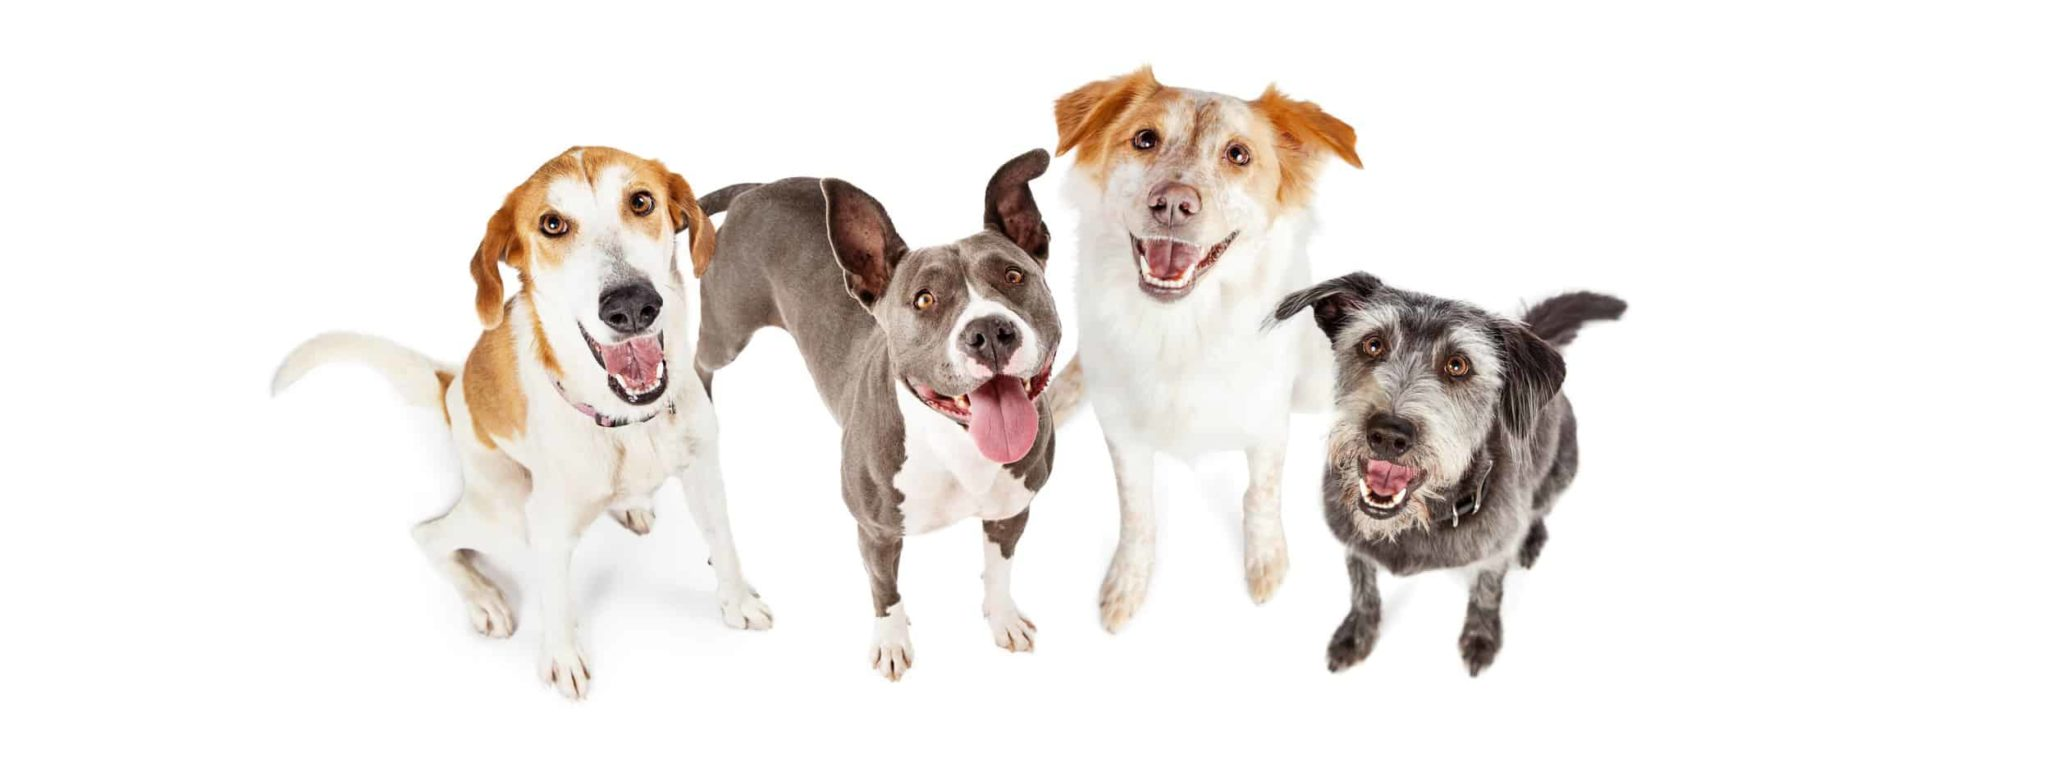 Four happy dogs. CBD oil for dogs in the UK helps treat epilepsy, arthritis, and anxiety.